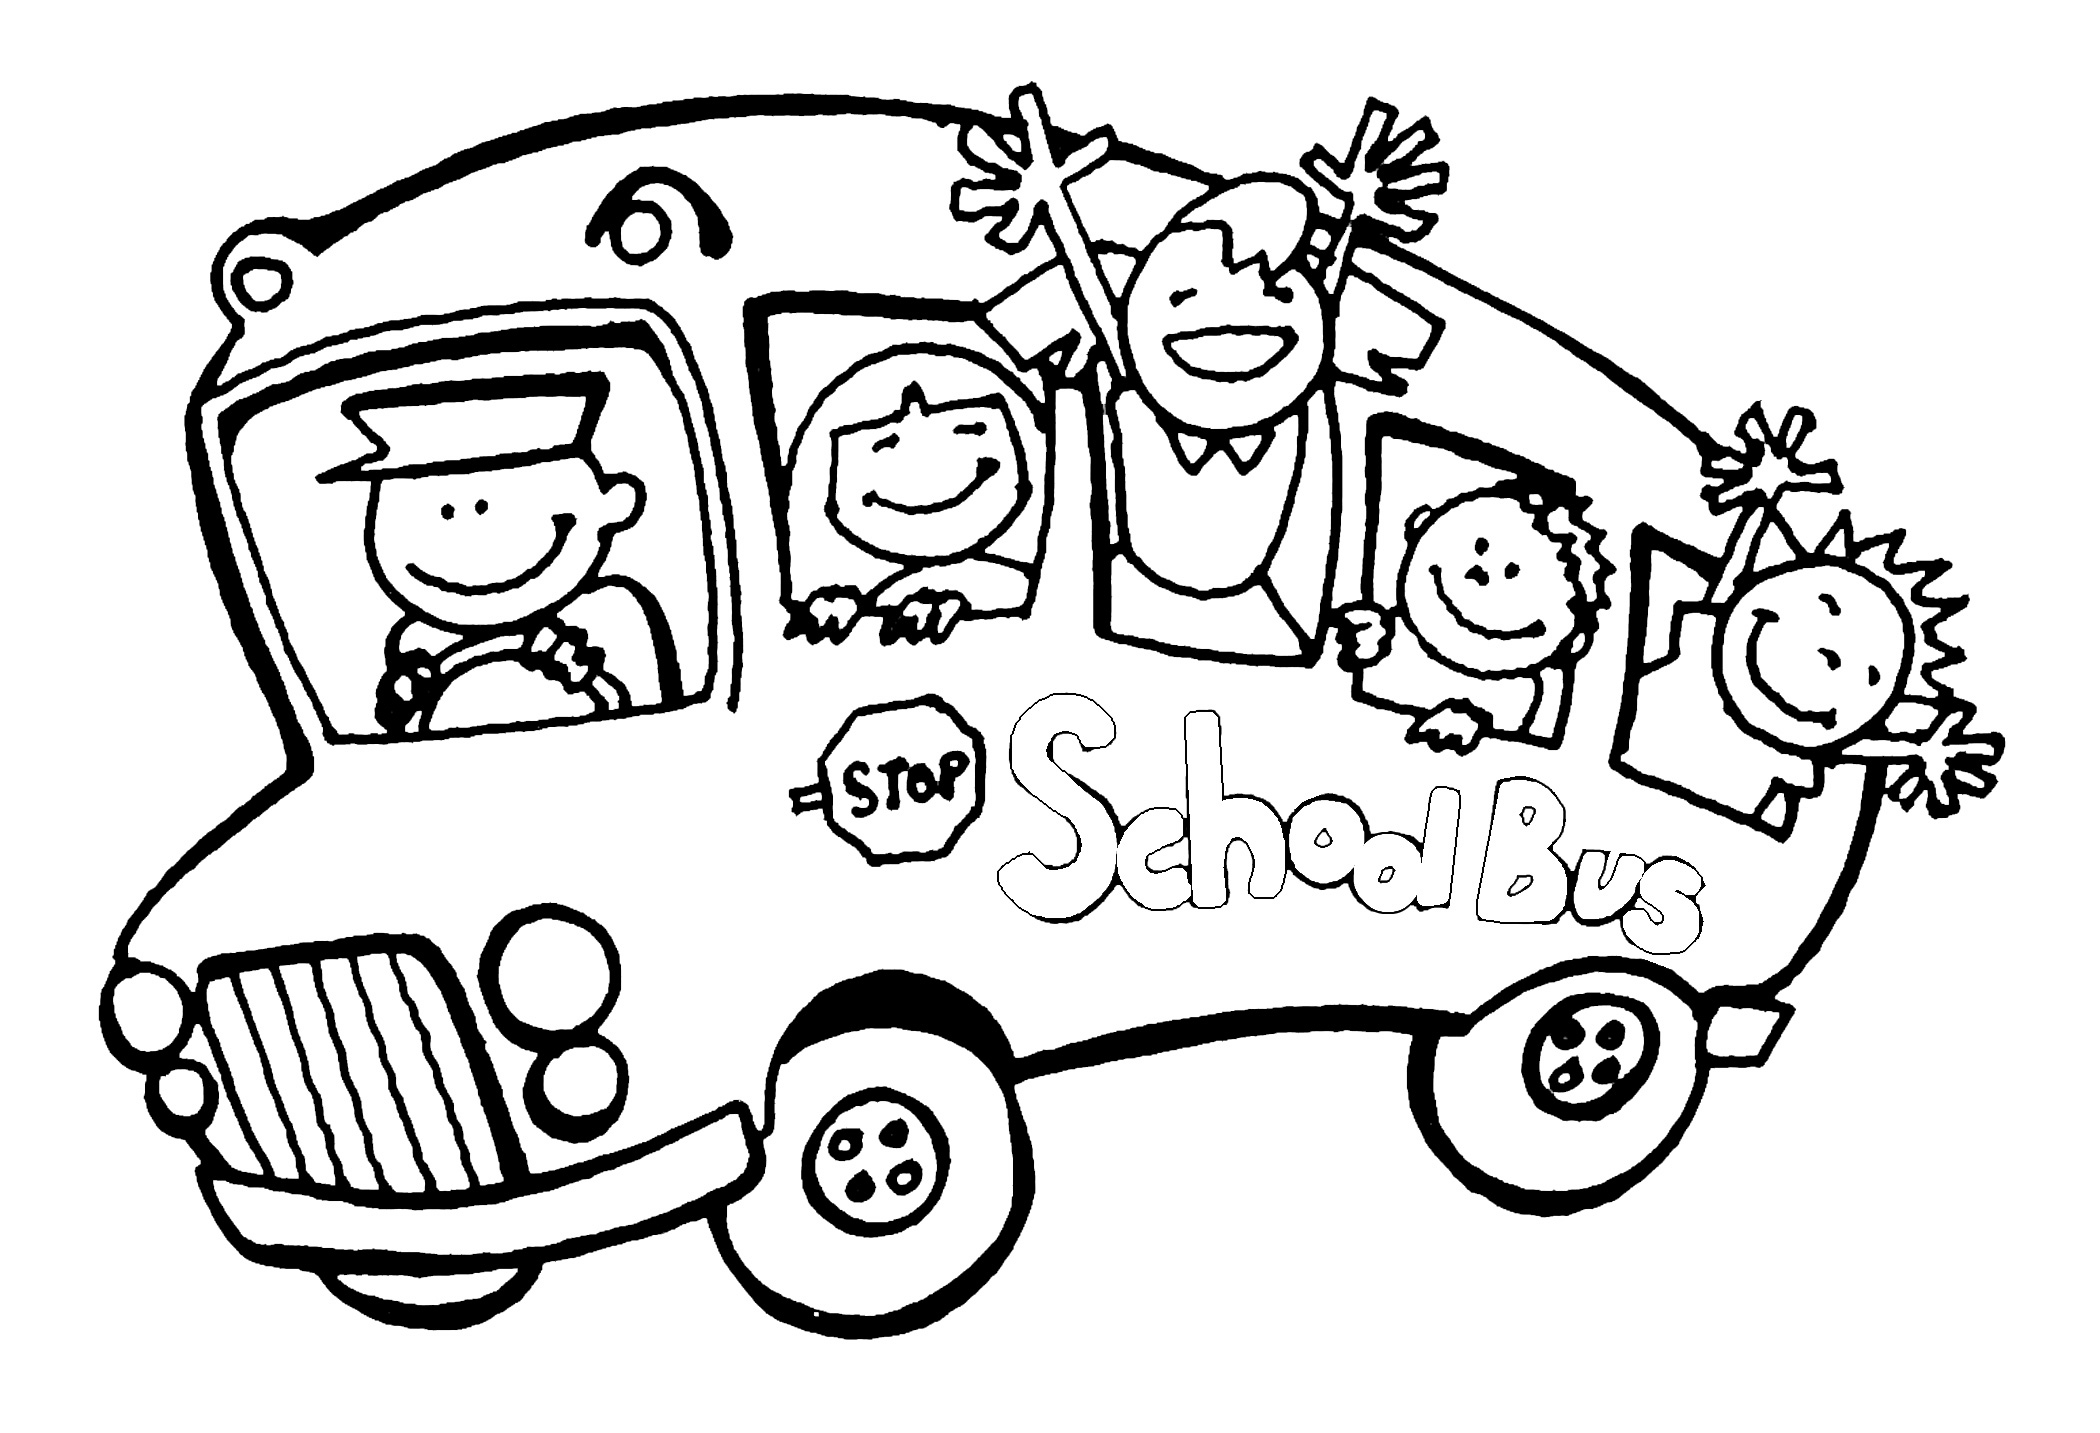 Kindergarten Coloring Sheets 03 Sheri Sarton Printable Of Christmas Coloring Pages Free to Print